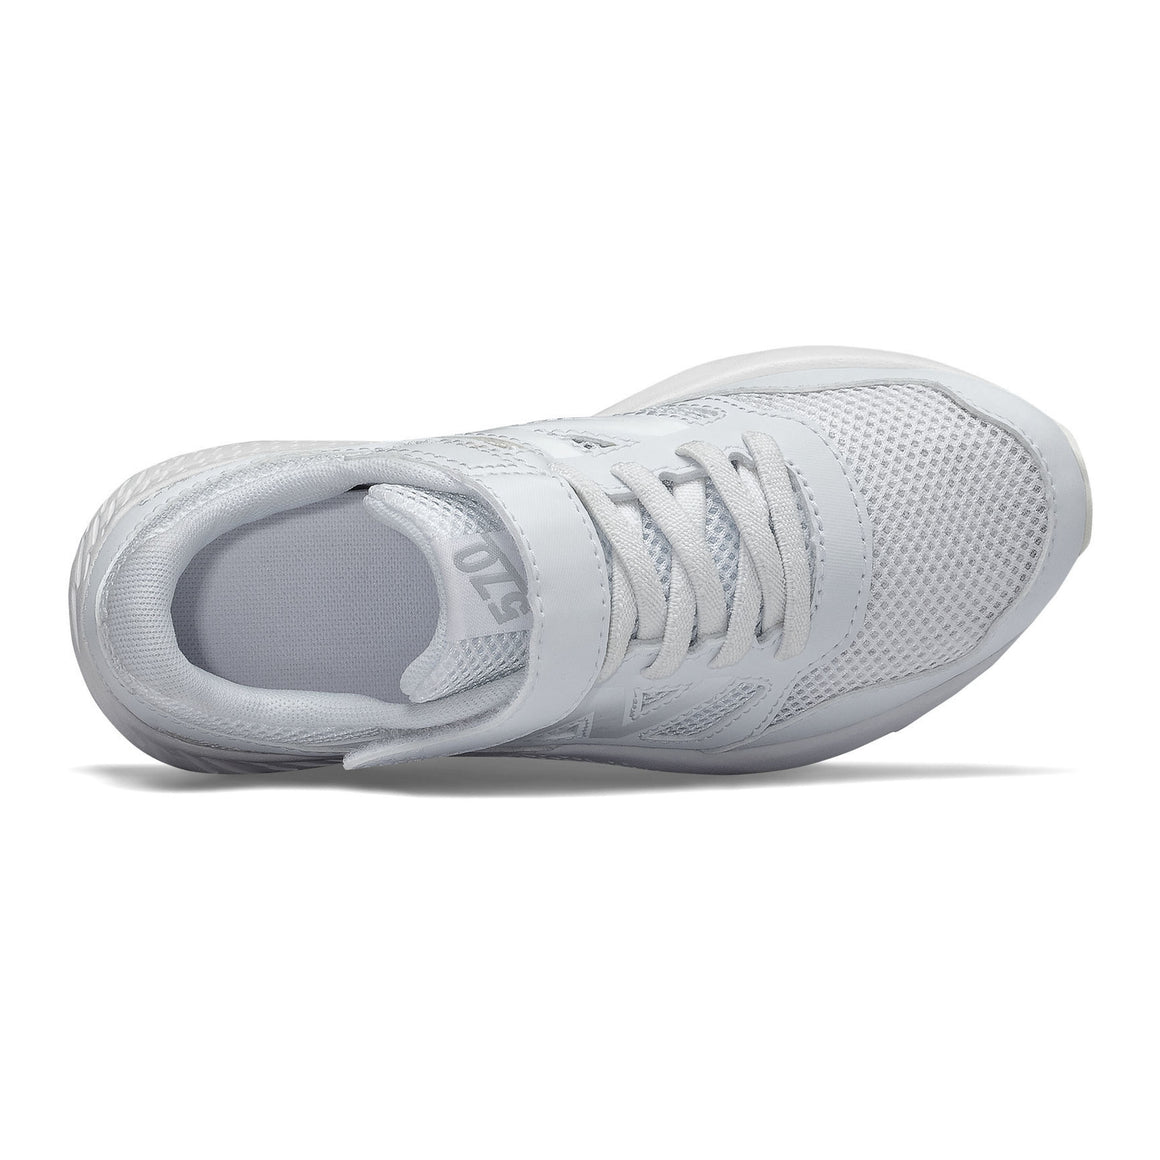 570 Running Shoes for Younger Kids in White